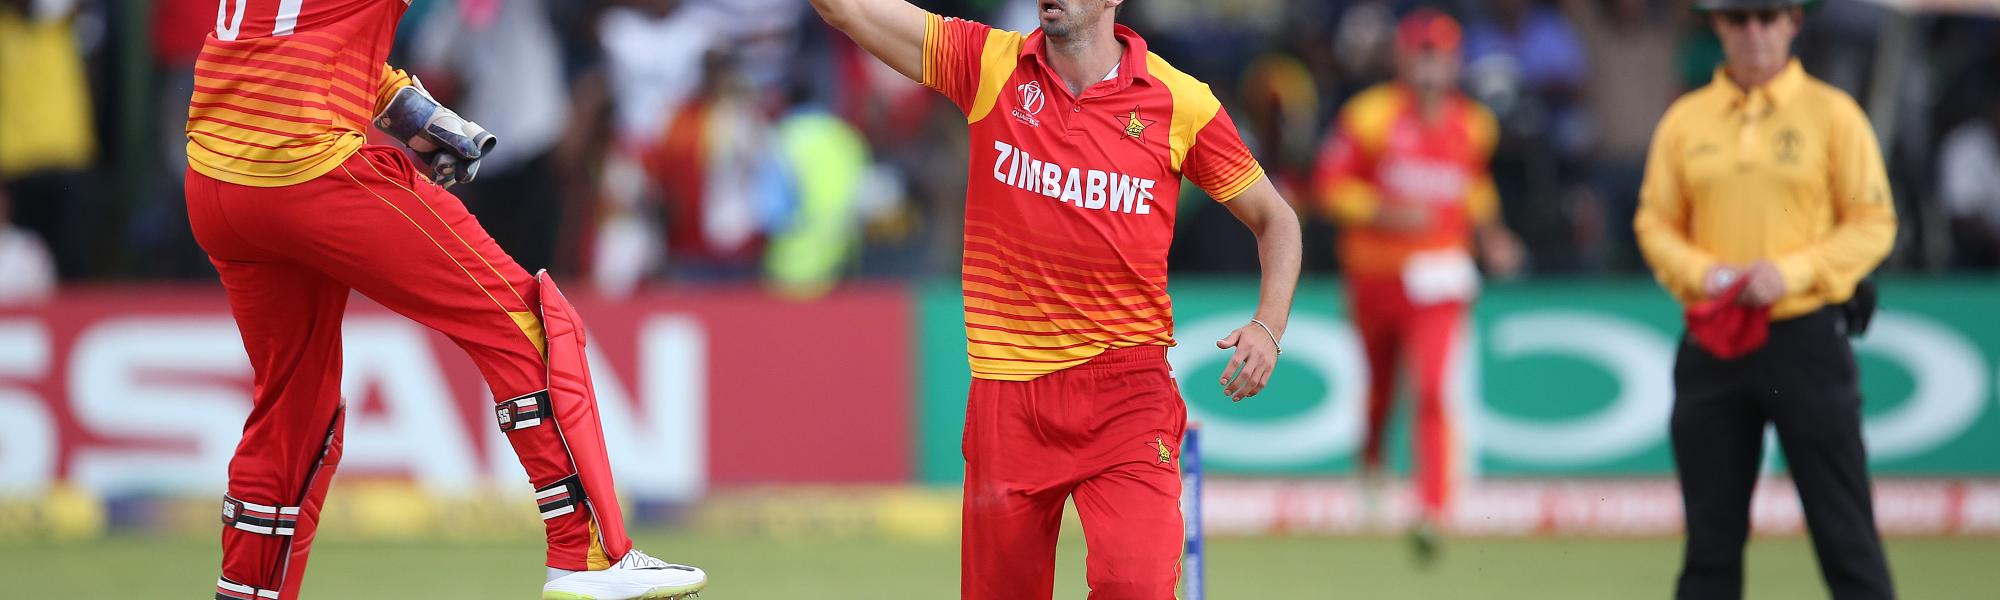 Graeme Cremer had glowing words for Zhuwao